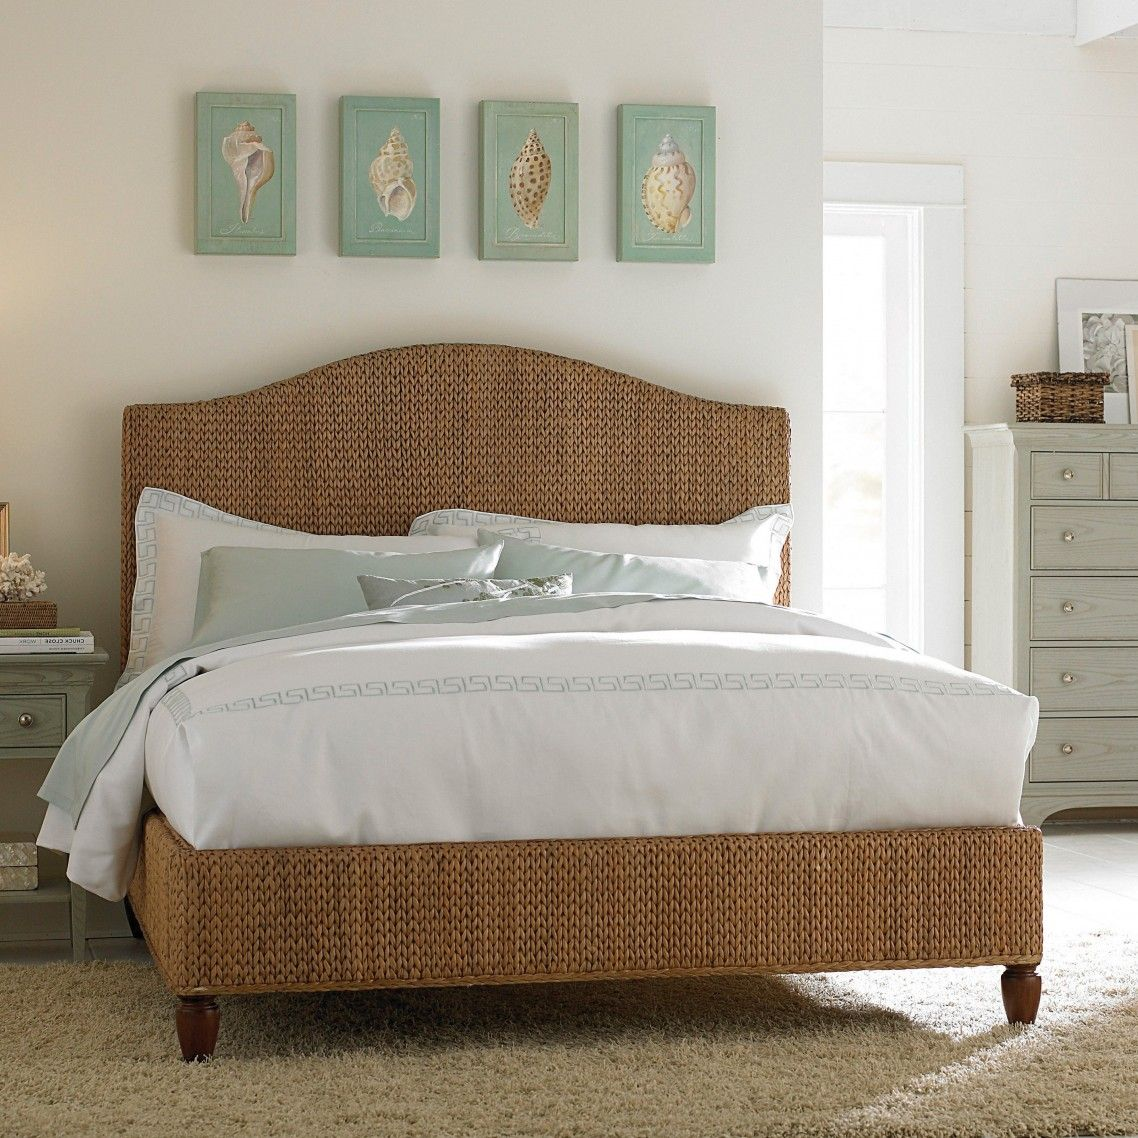 Queen Bed Frame Fantastic Furniture Awesome Excellent Brown Wicker Rattan Mid Century Queen